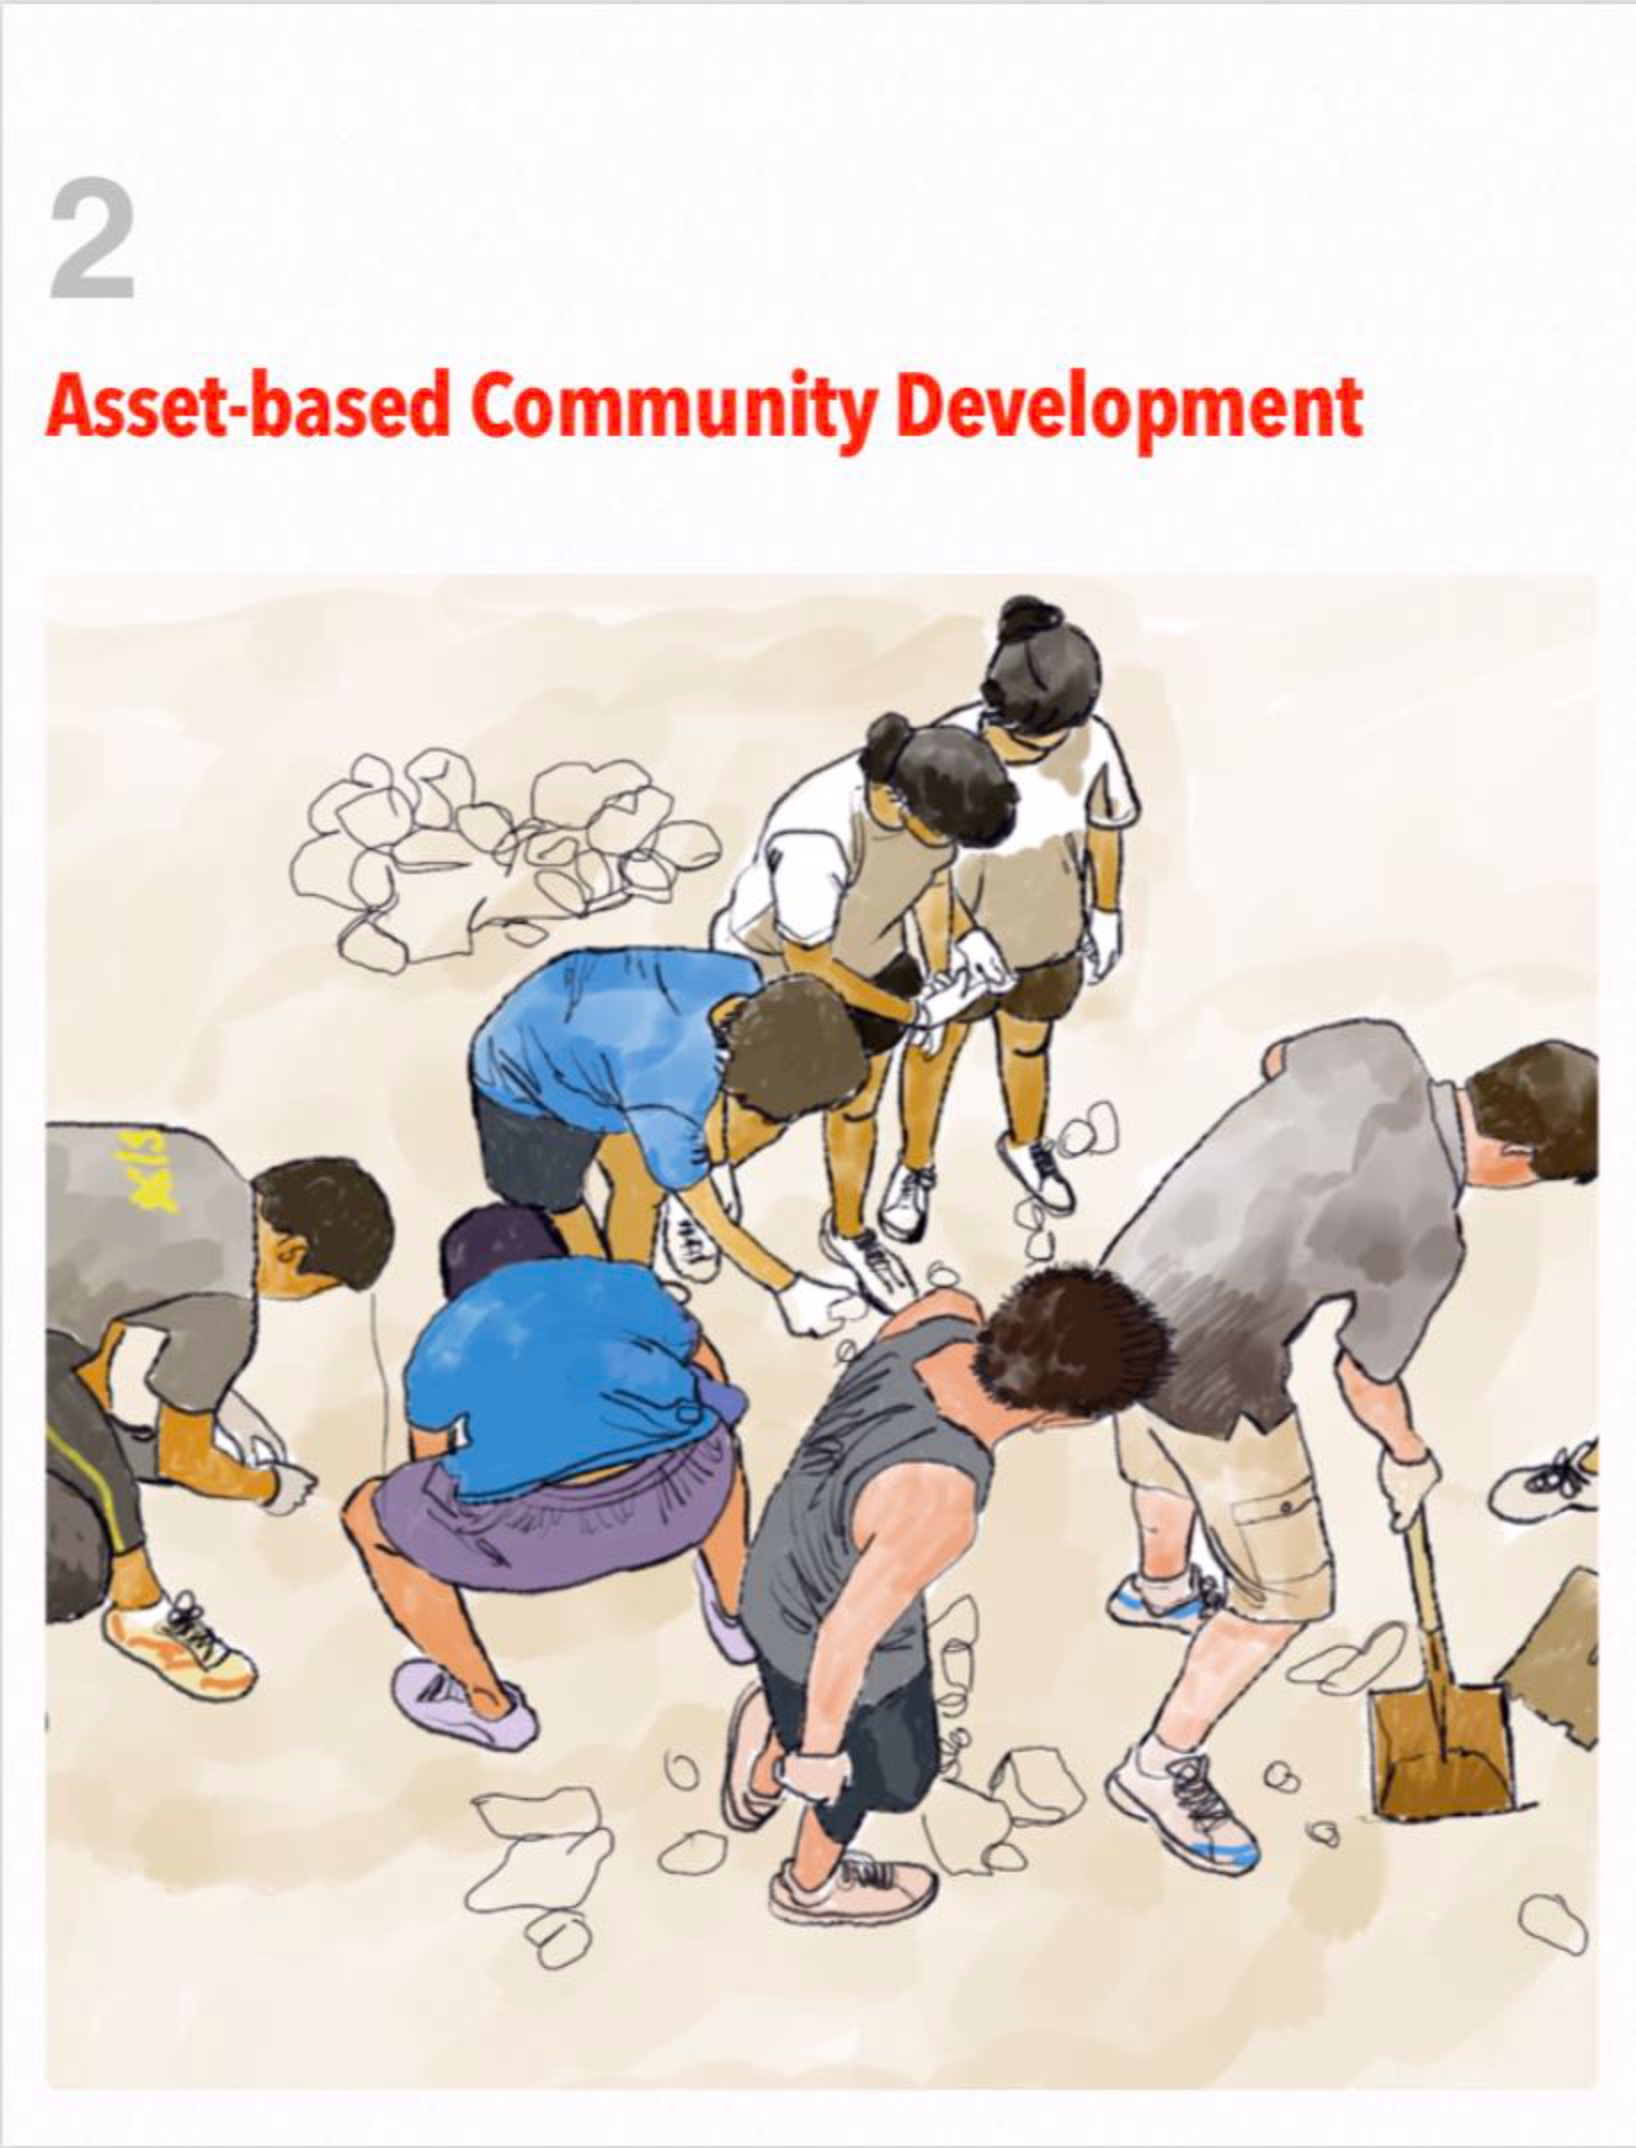 Involving Youth in Community Development